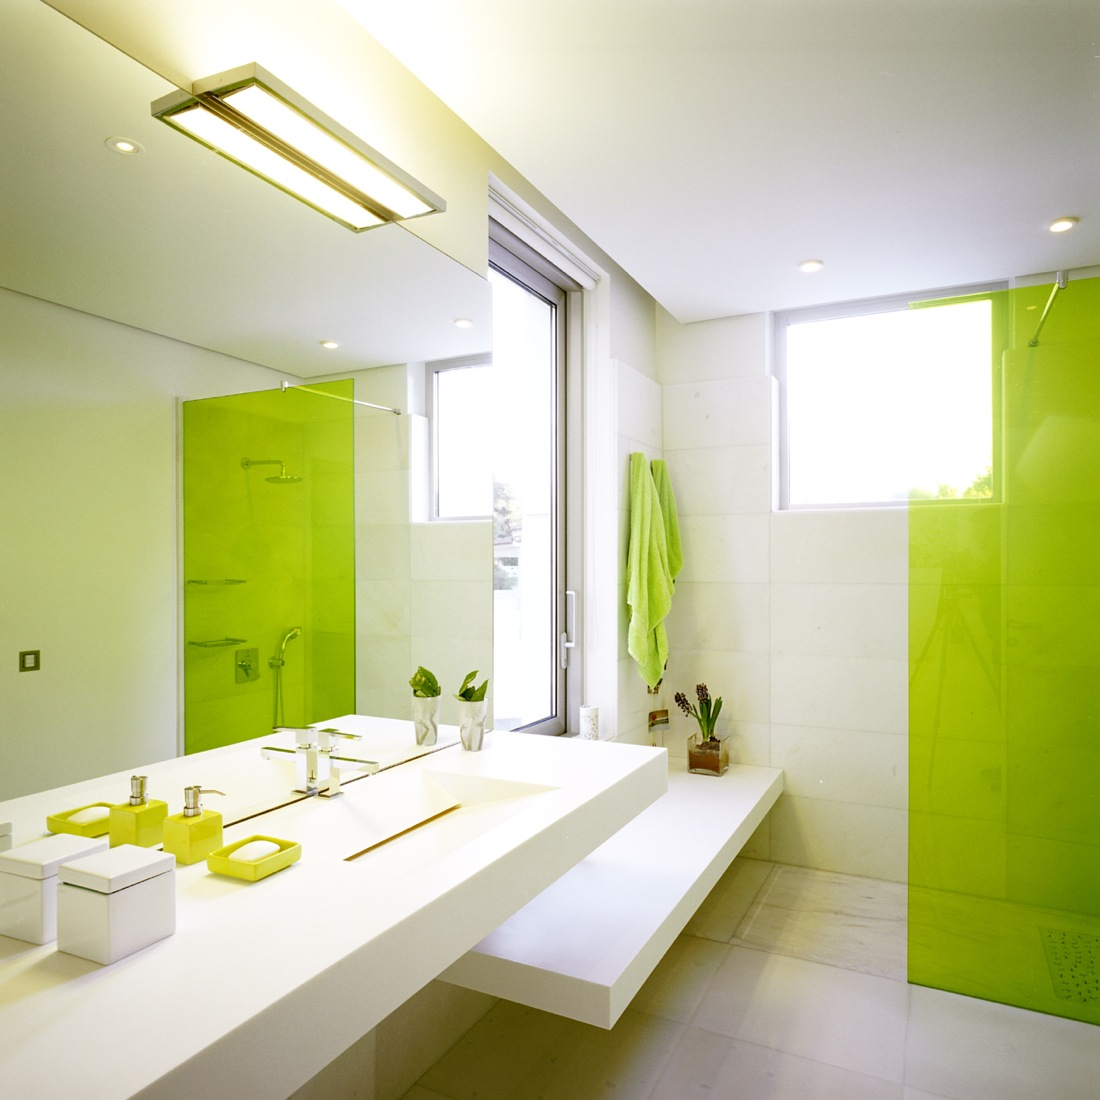 Minimalist bathroom designs home designs project for House simple restroom design